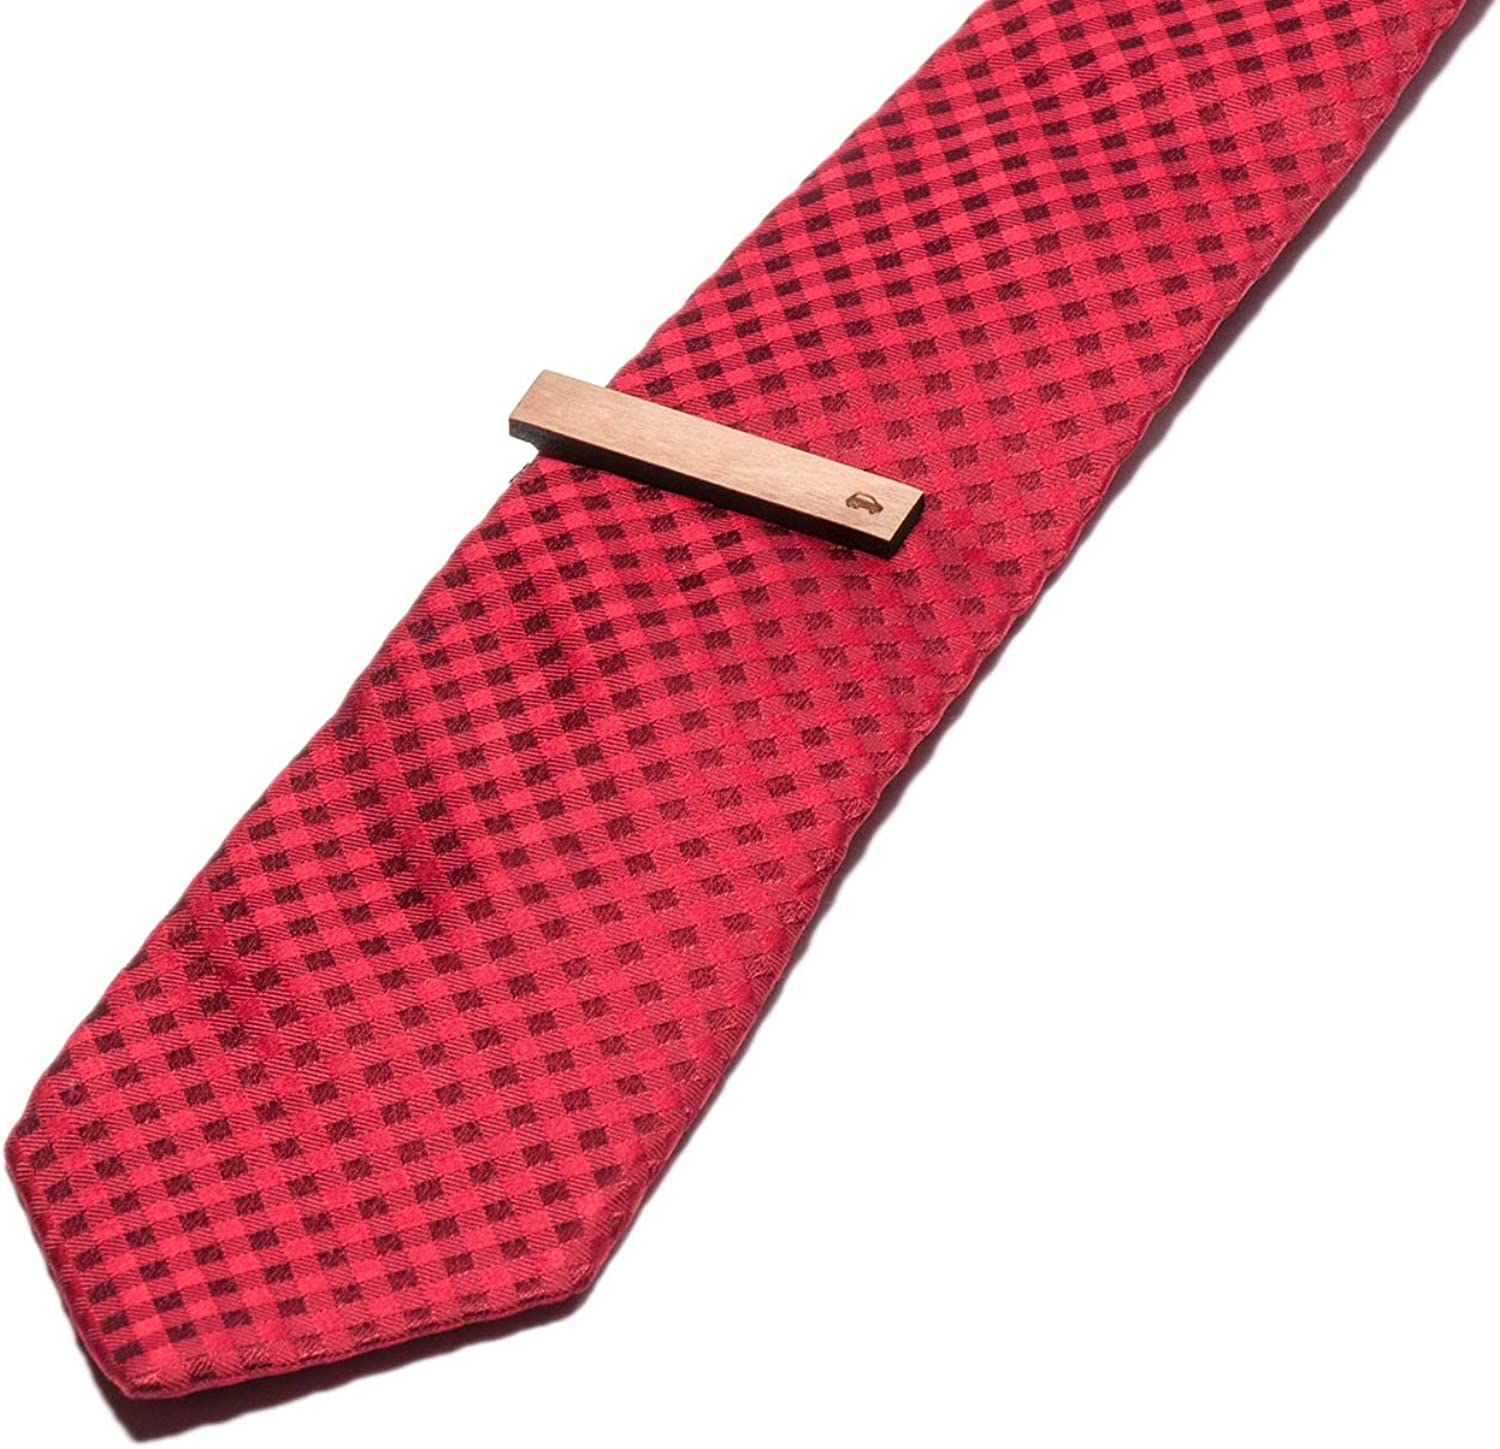 Wooden Accessories Company Wooden Tie Clips with Laser Engraved 6 Wheeler Design Cherry Wood Tie Bar Engraved in The USA